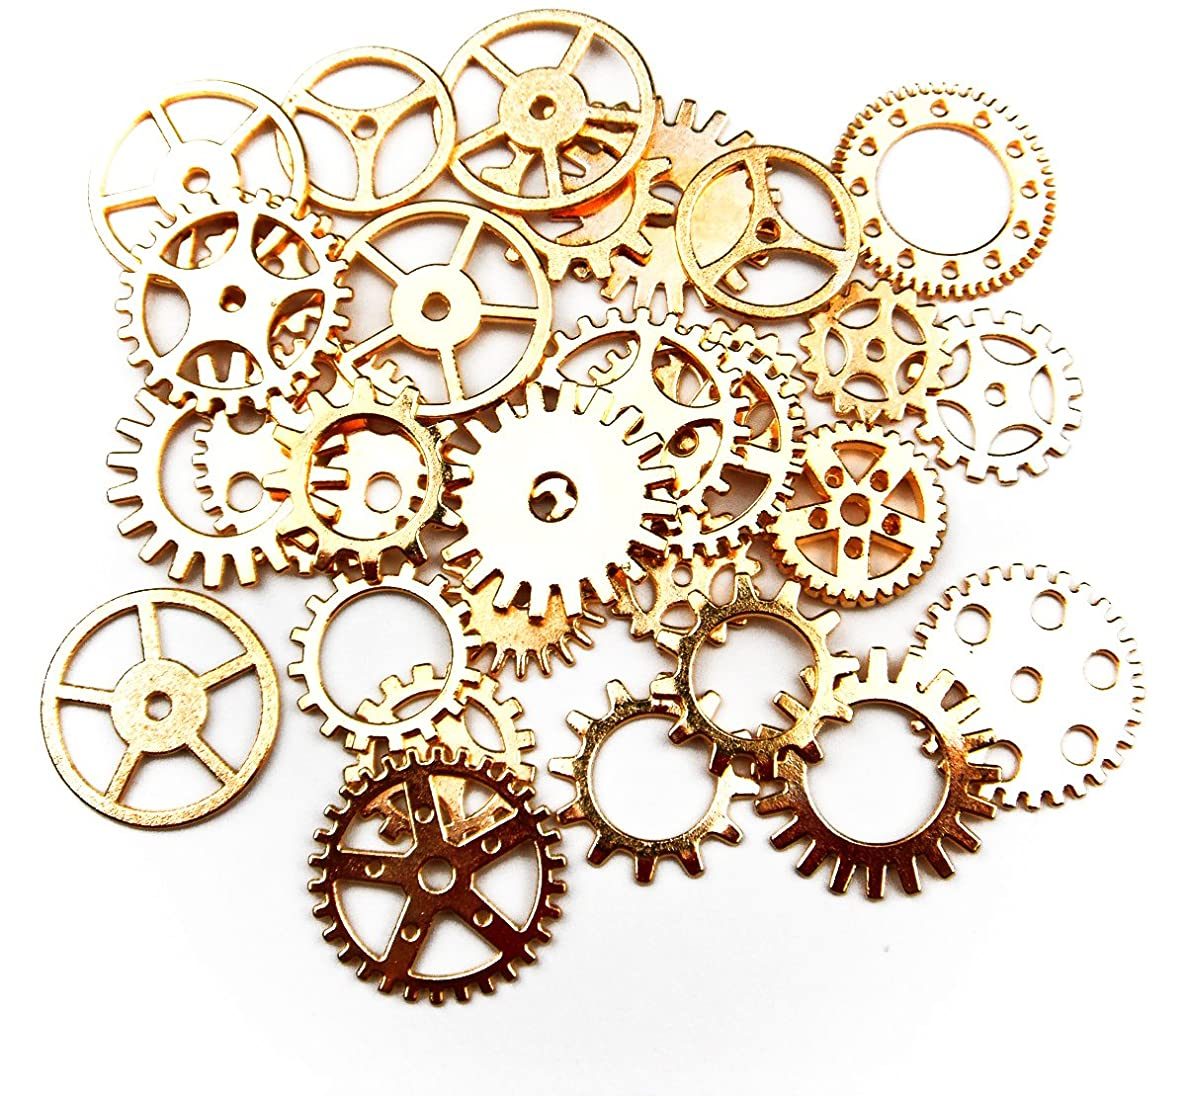 ALL in ONE 30pcs Steampunk Gear Wheel Charms Cog Connectors Pendants Jewelry Finding DIY Craft (GOLD)